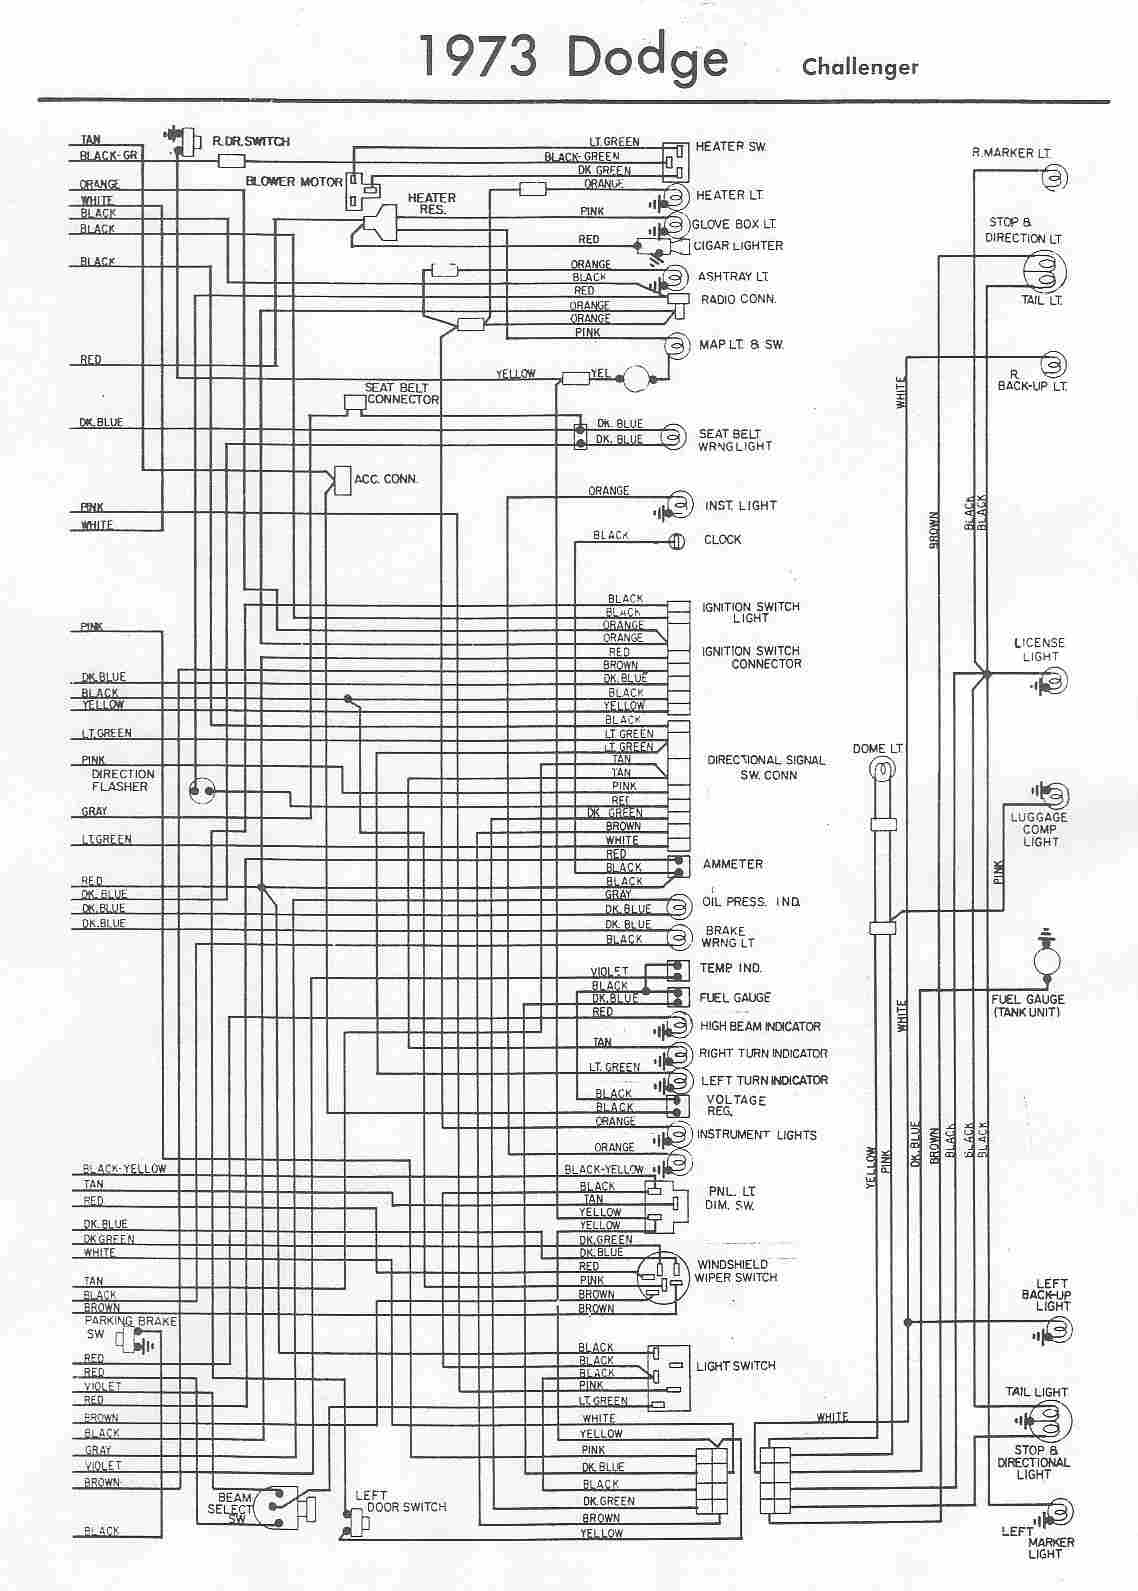 Dodge Car Manuals Wiring Diagrams Pdf Fault Codes 2009 Grand Caravan Engine Diagram Electrical Of 1973 Challenger